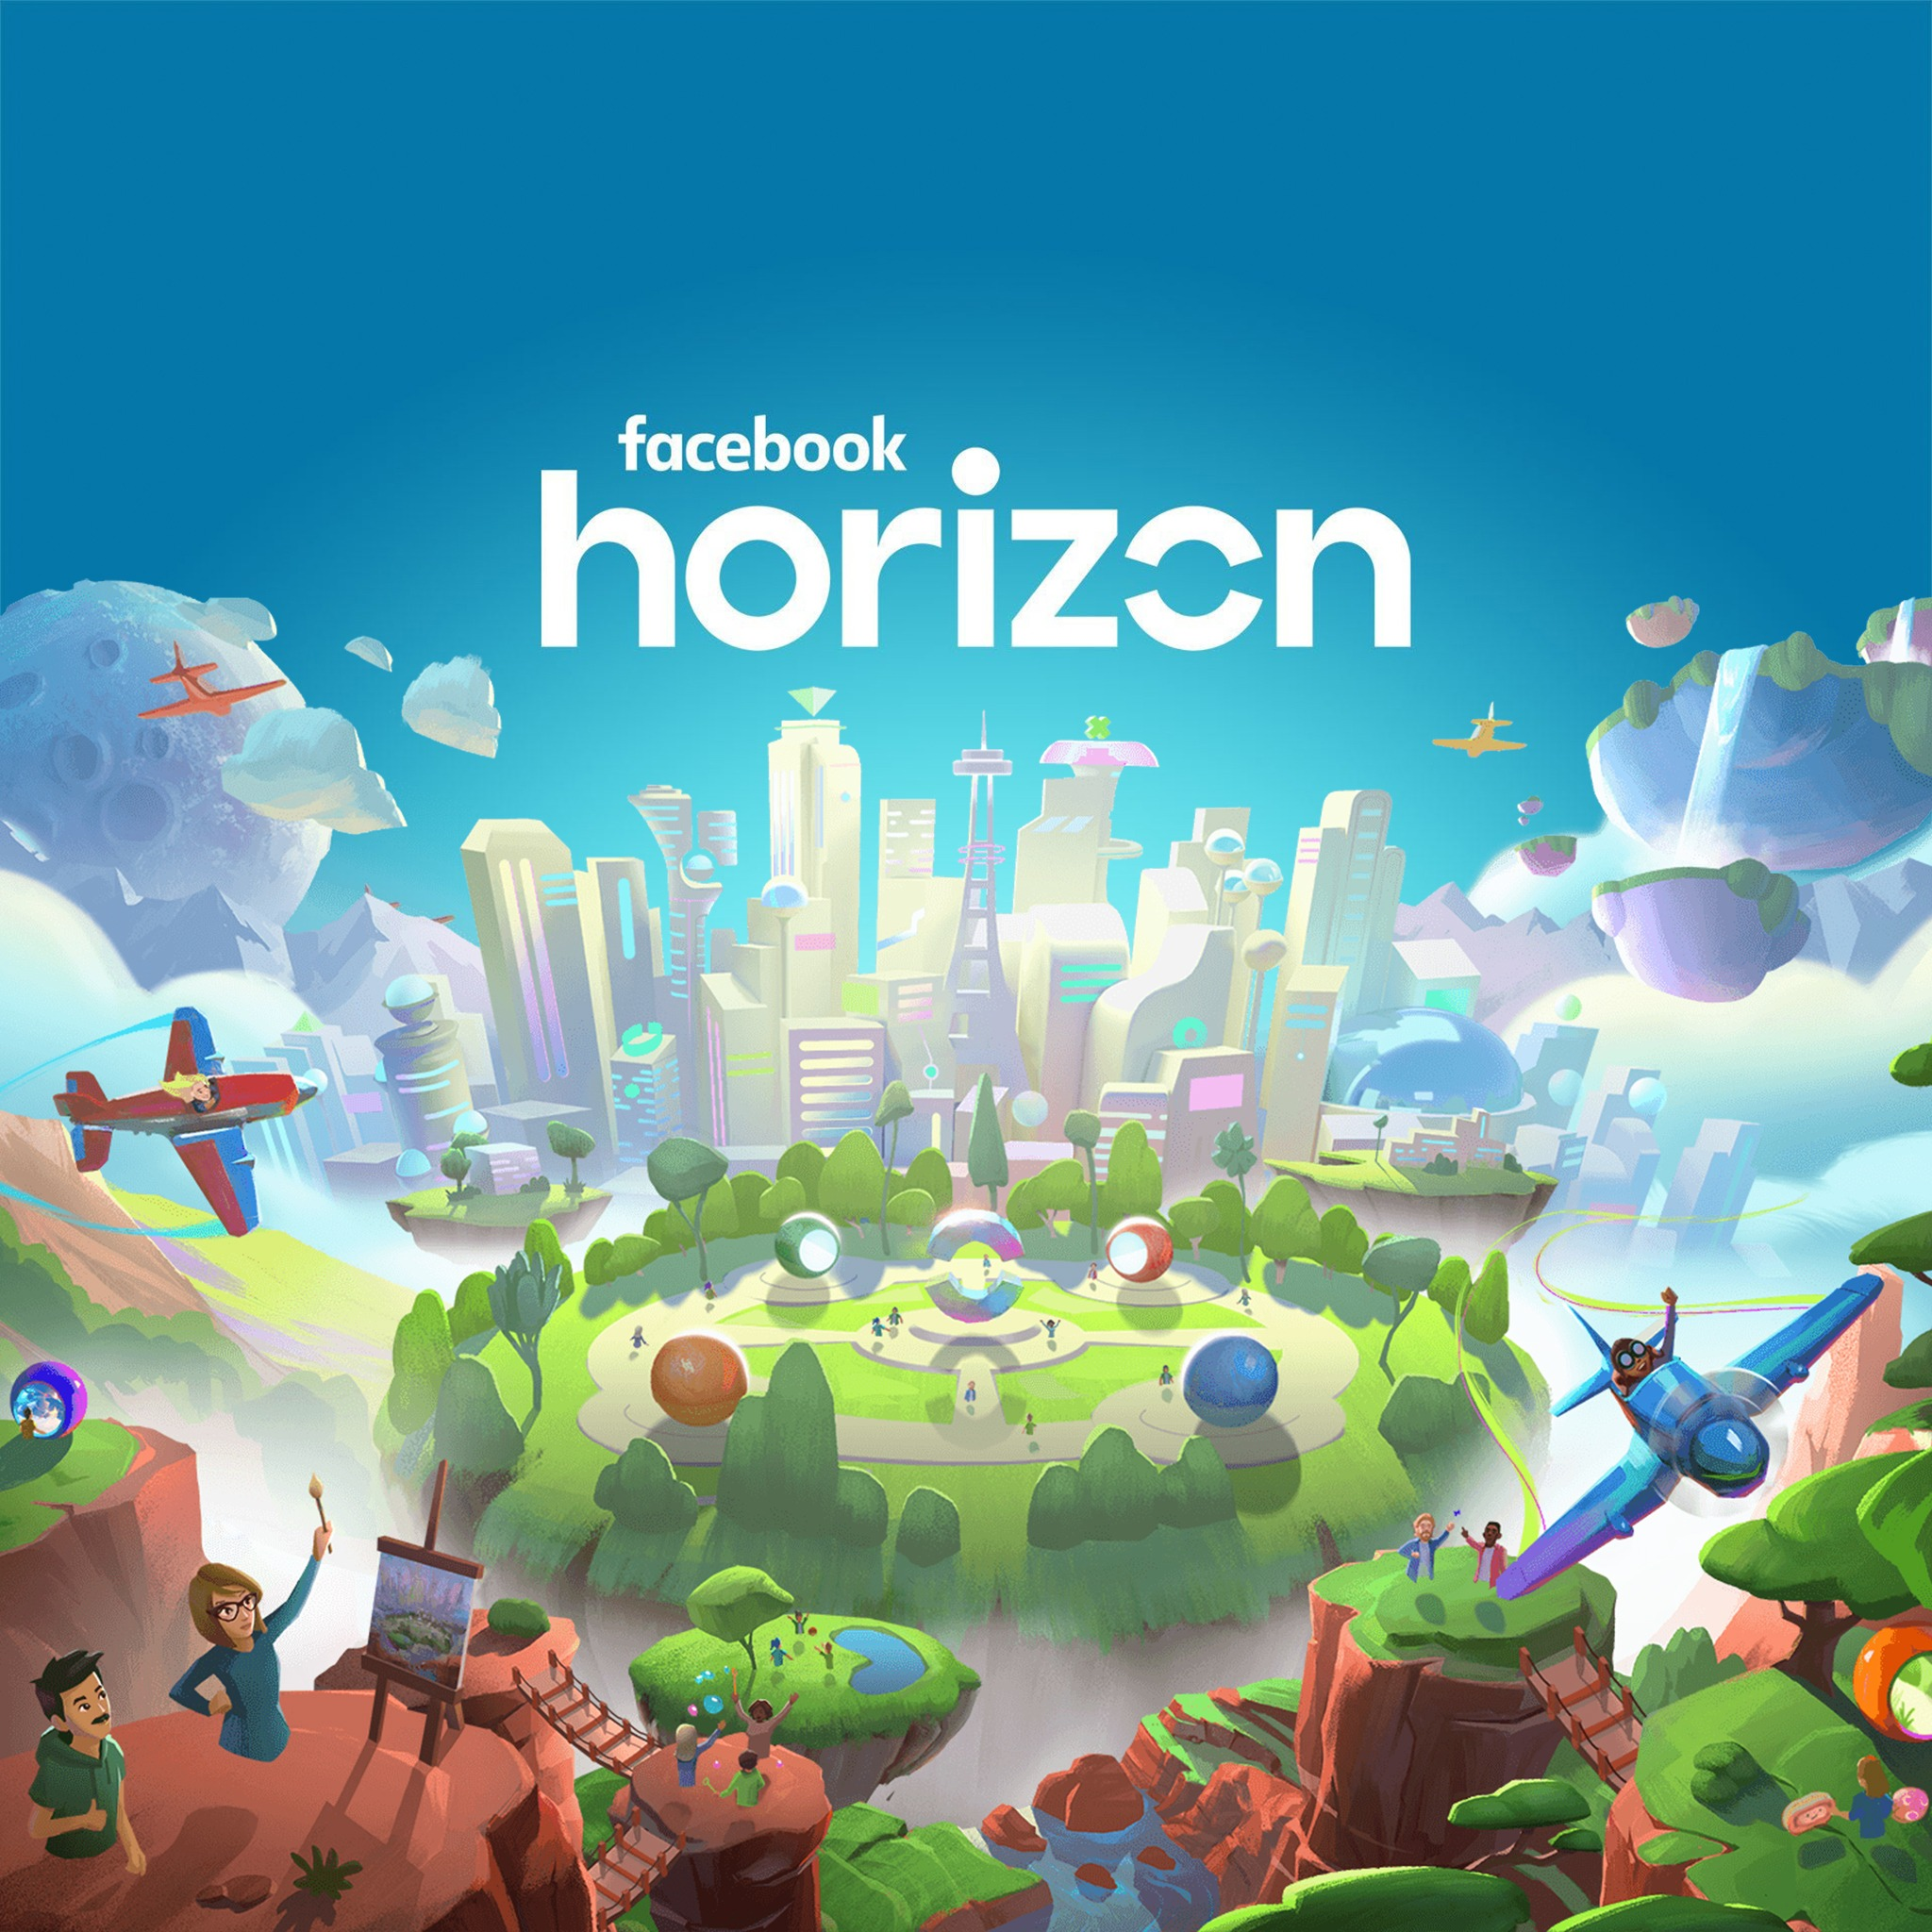 Facebook Horizon VRDK blog